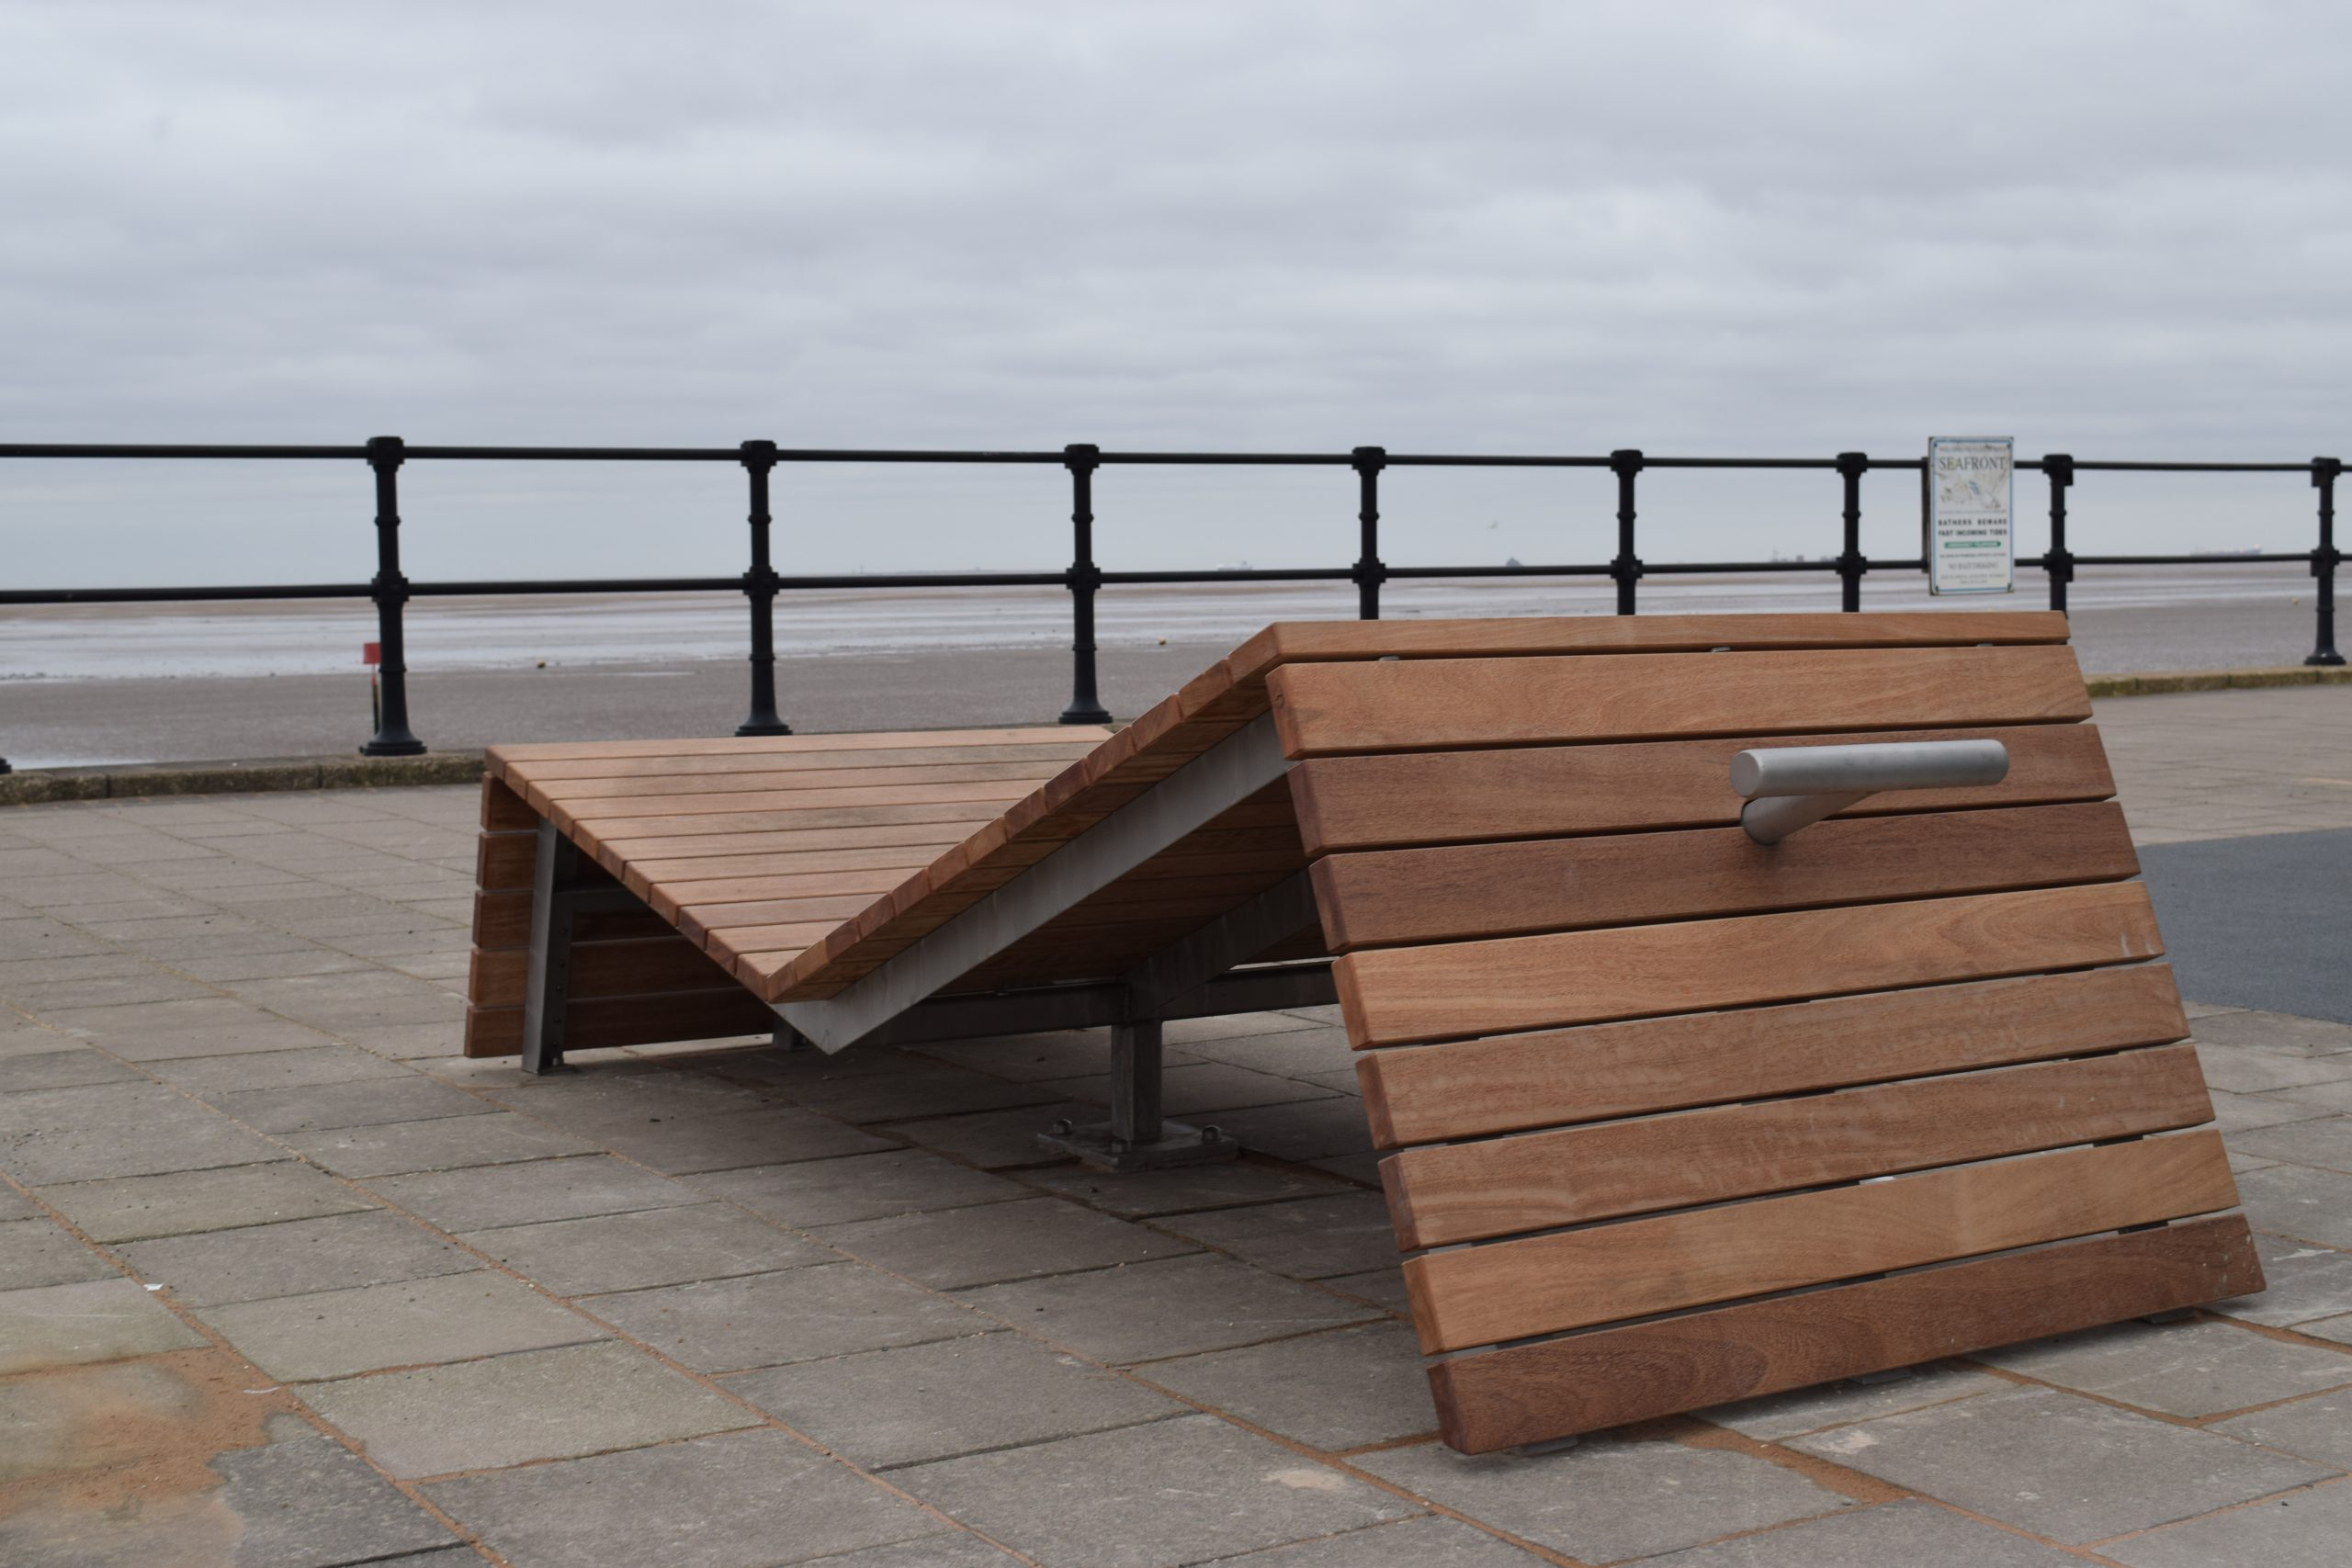 New exercise furniture installed on the North Prom